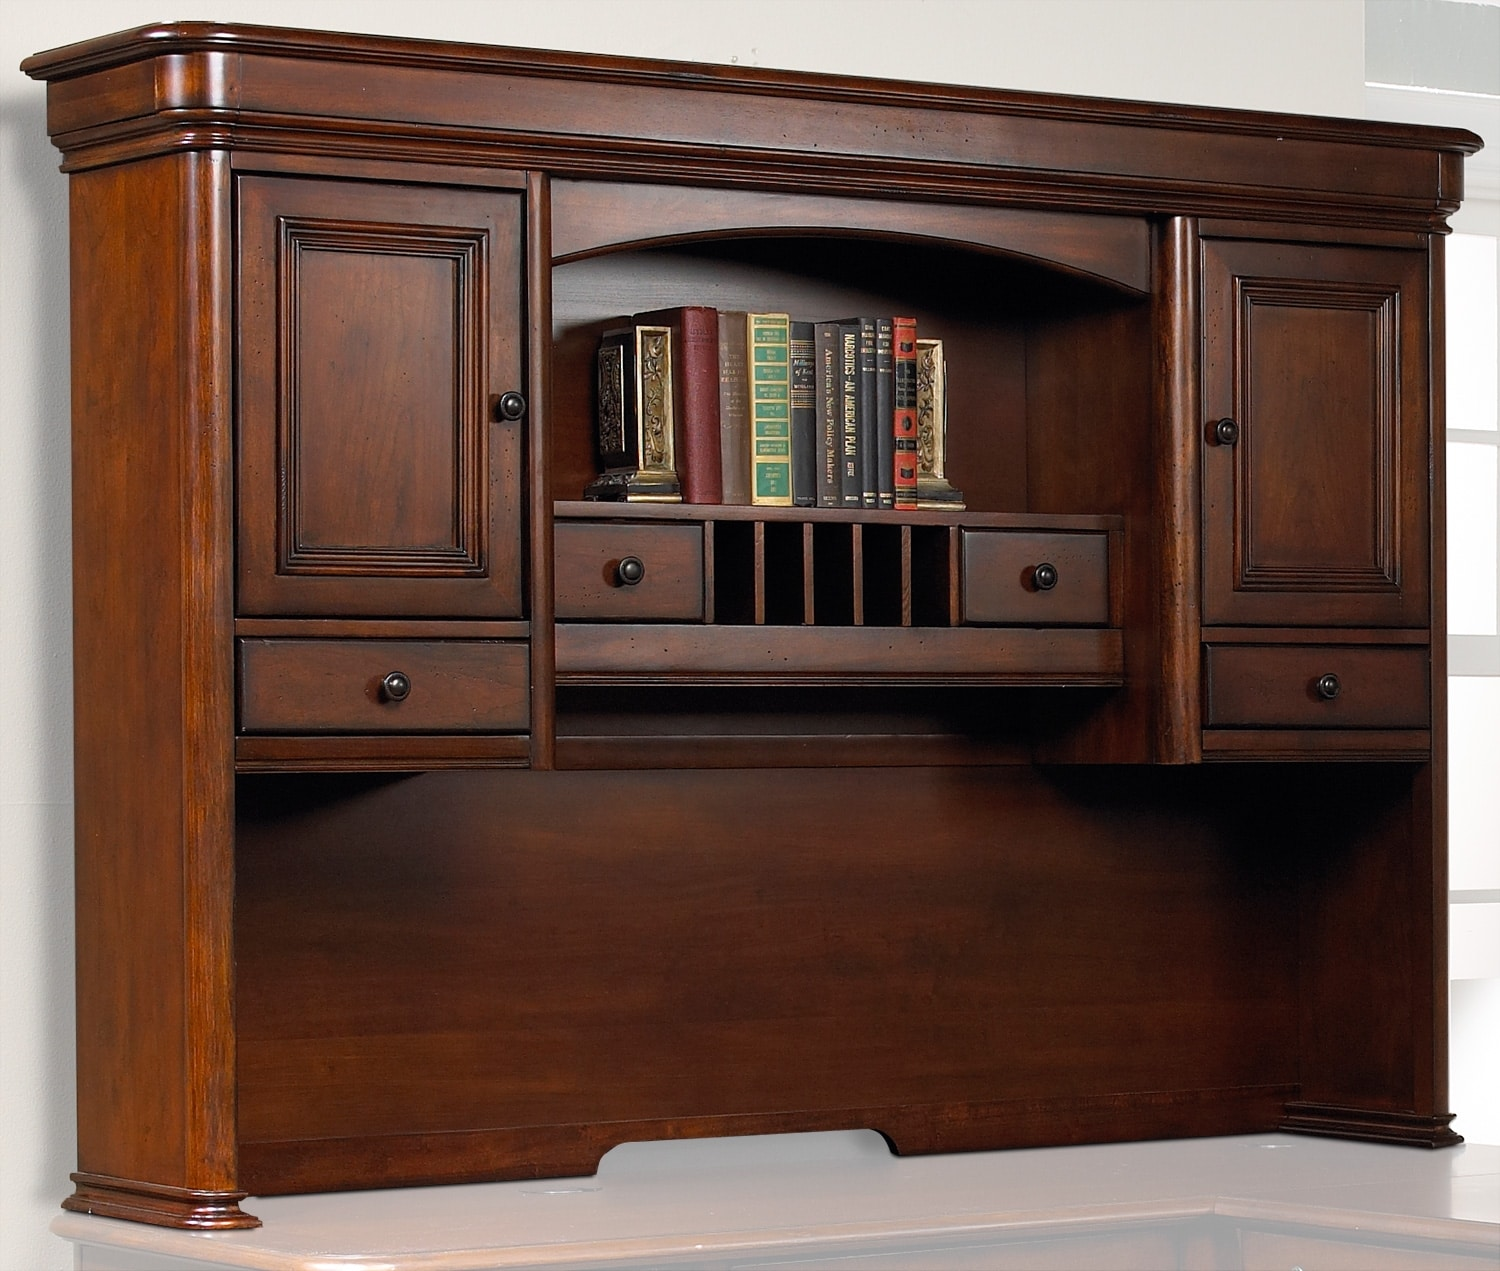 Villa Toscana Hutch - Brown Cherry